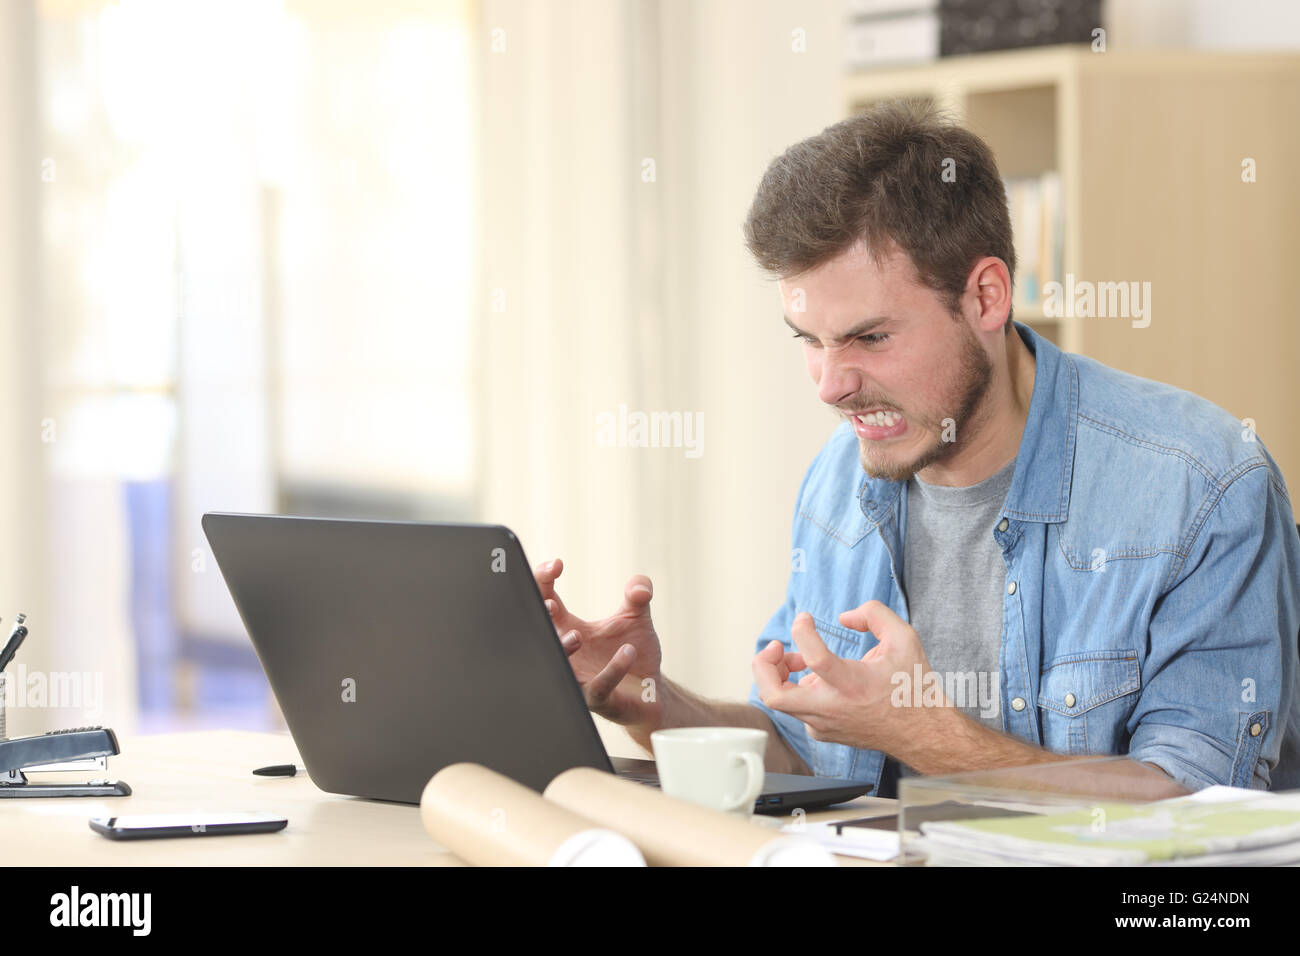 Entrepreneur angry and furious with a laptop in a little office or home - Stock Image